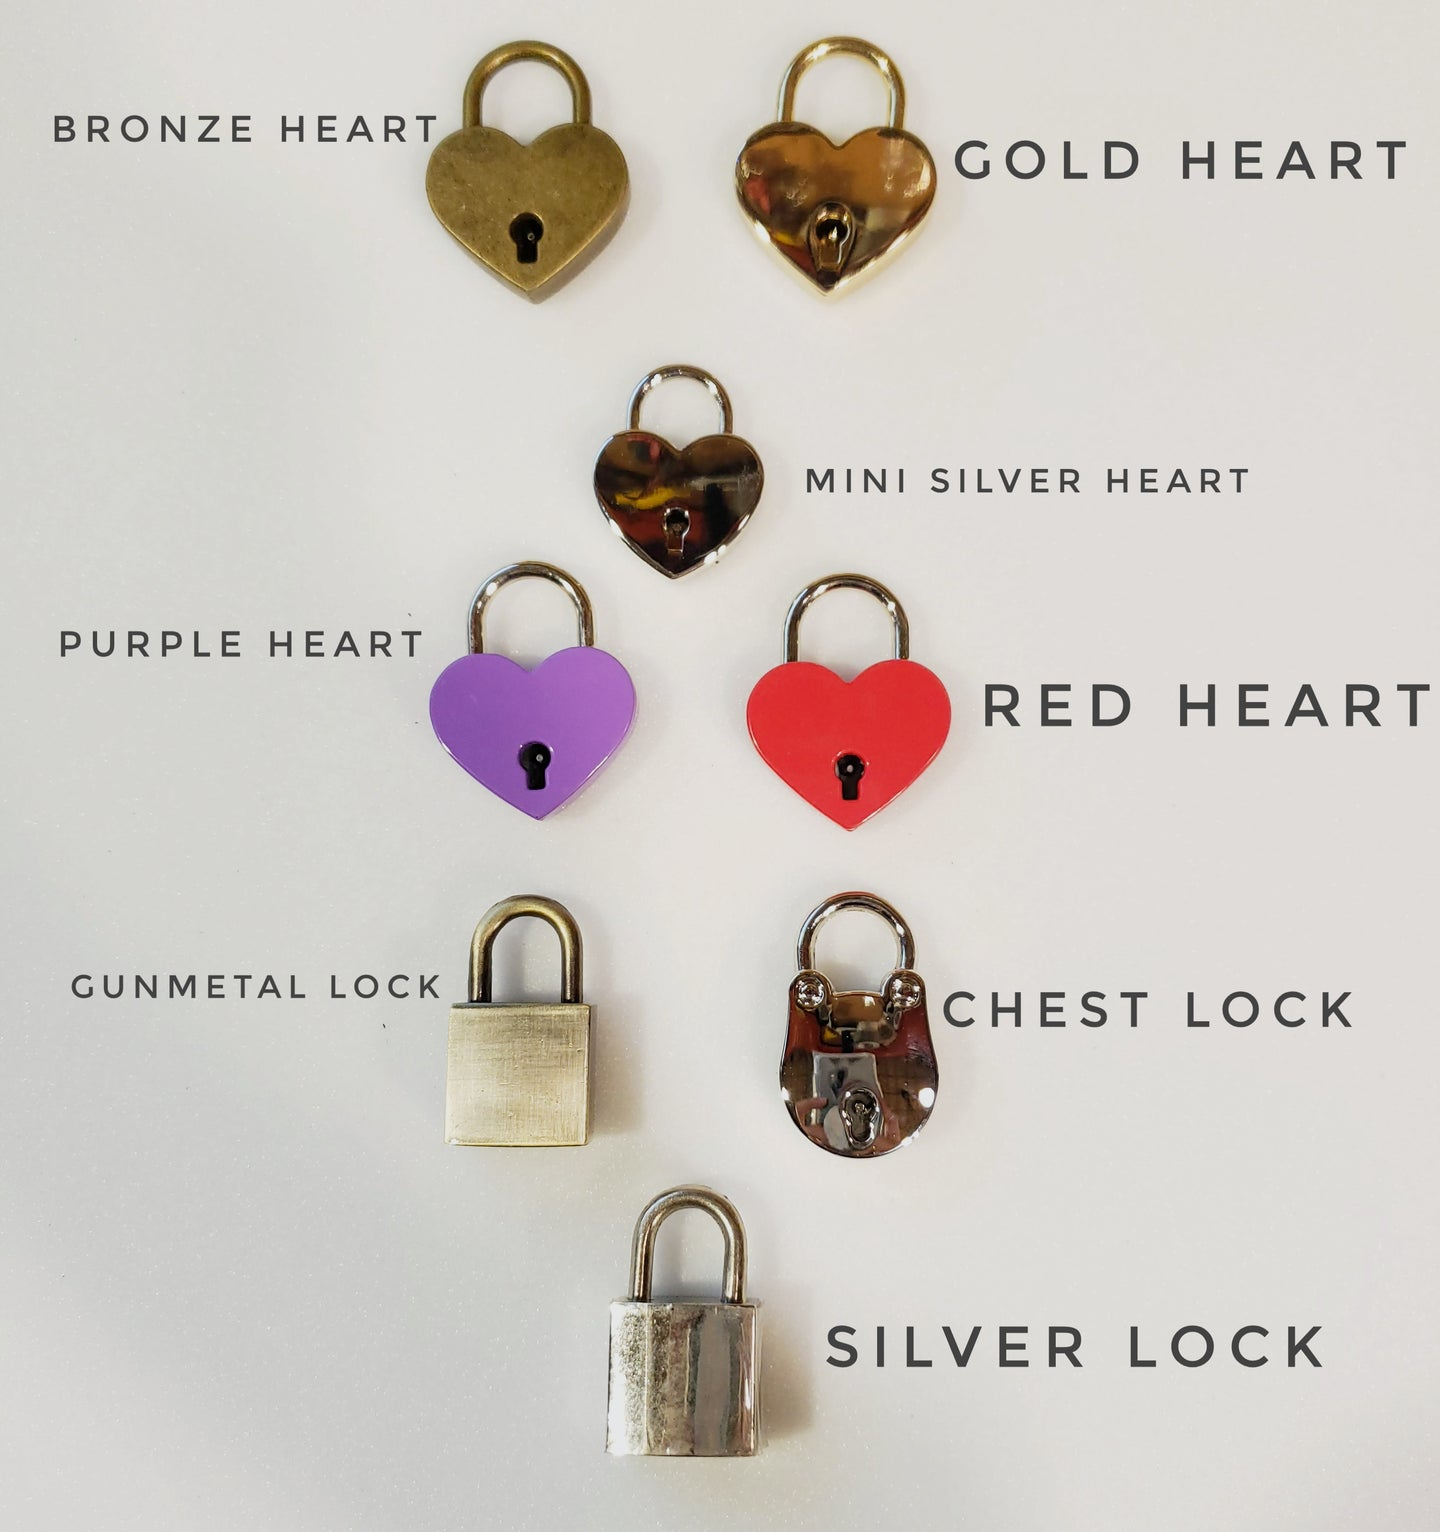 Locks and locking buckles for Collar and Cuffs